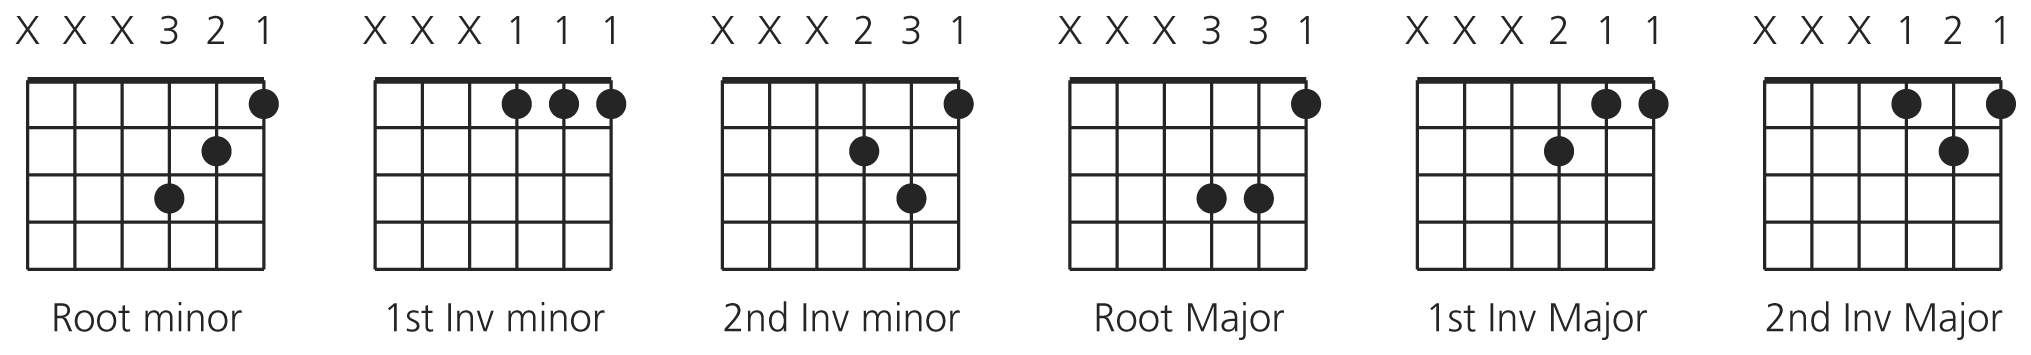 File:Guitar triads.png - Wikimedia Commons